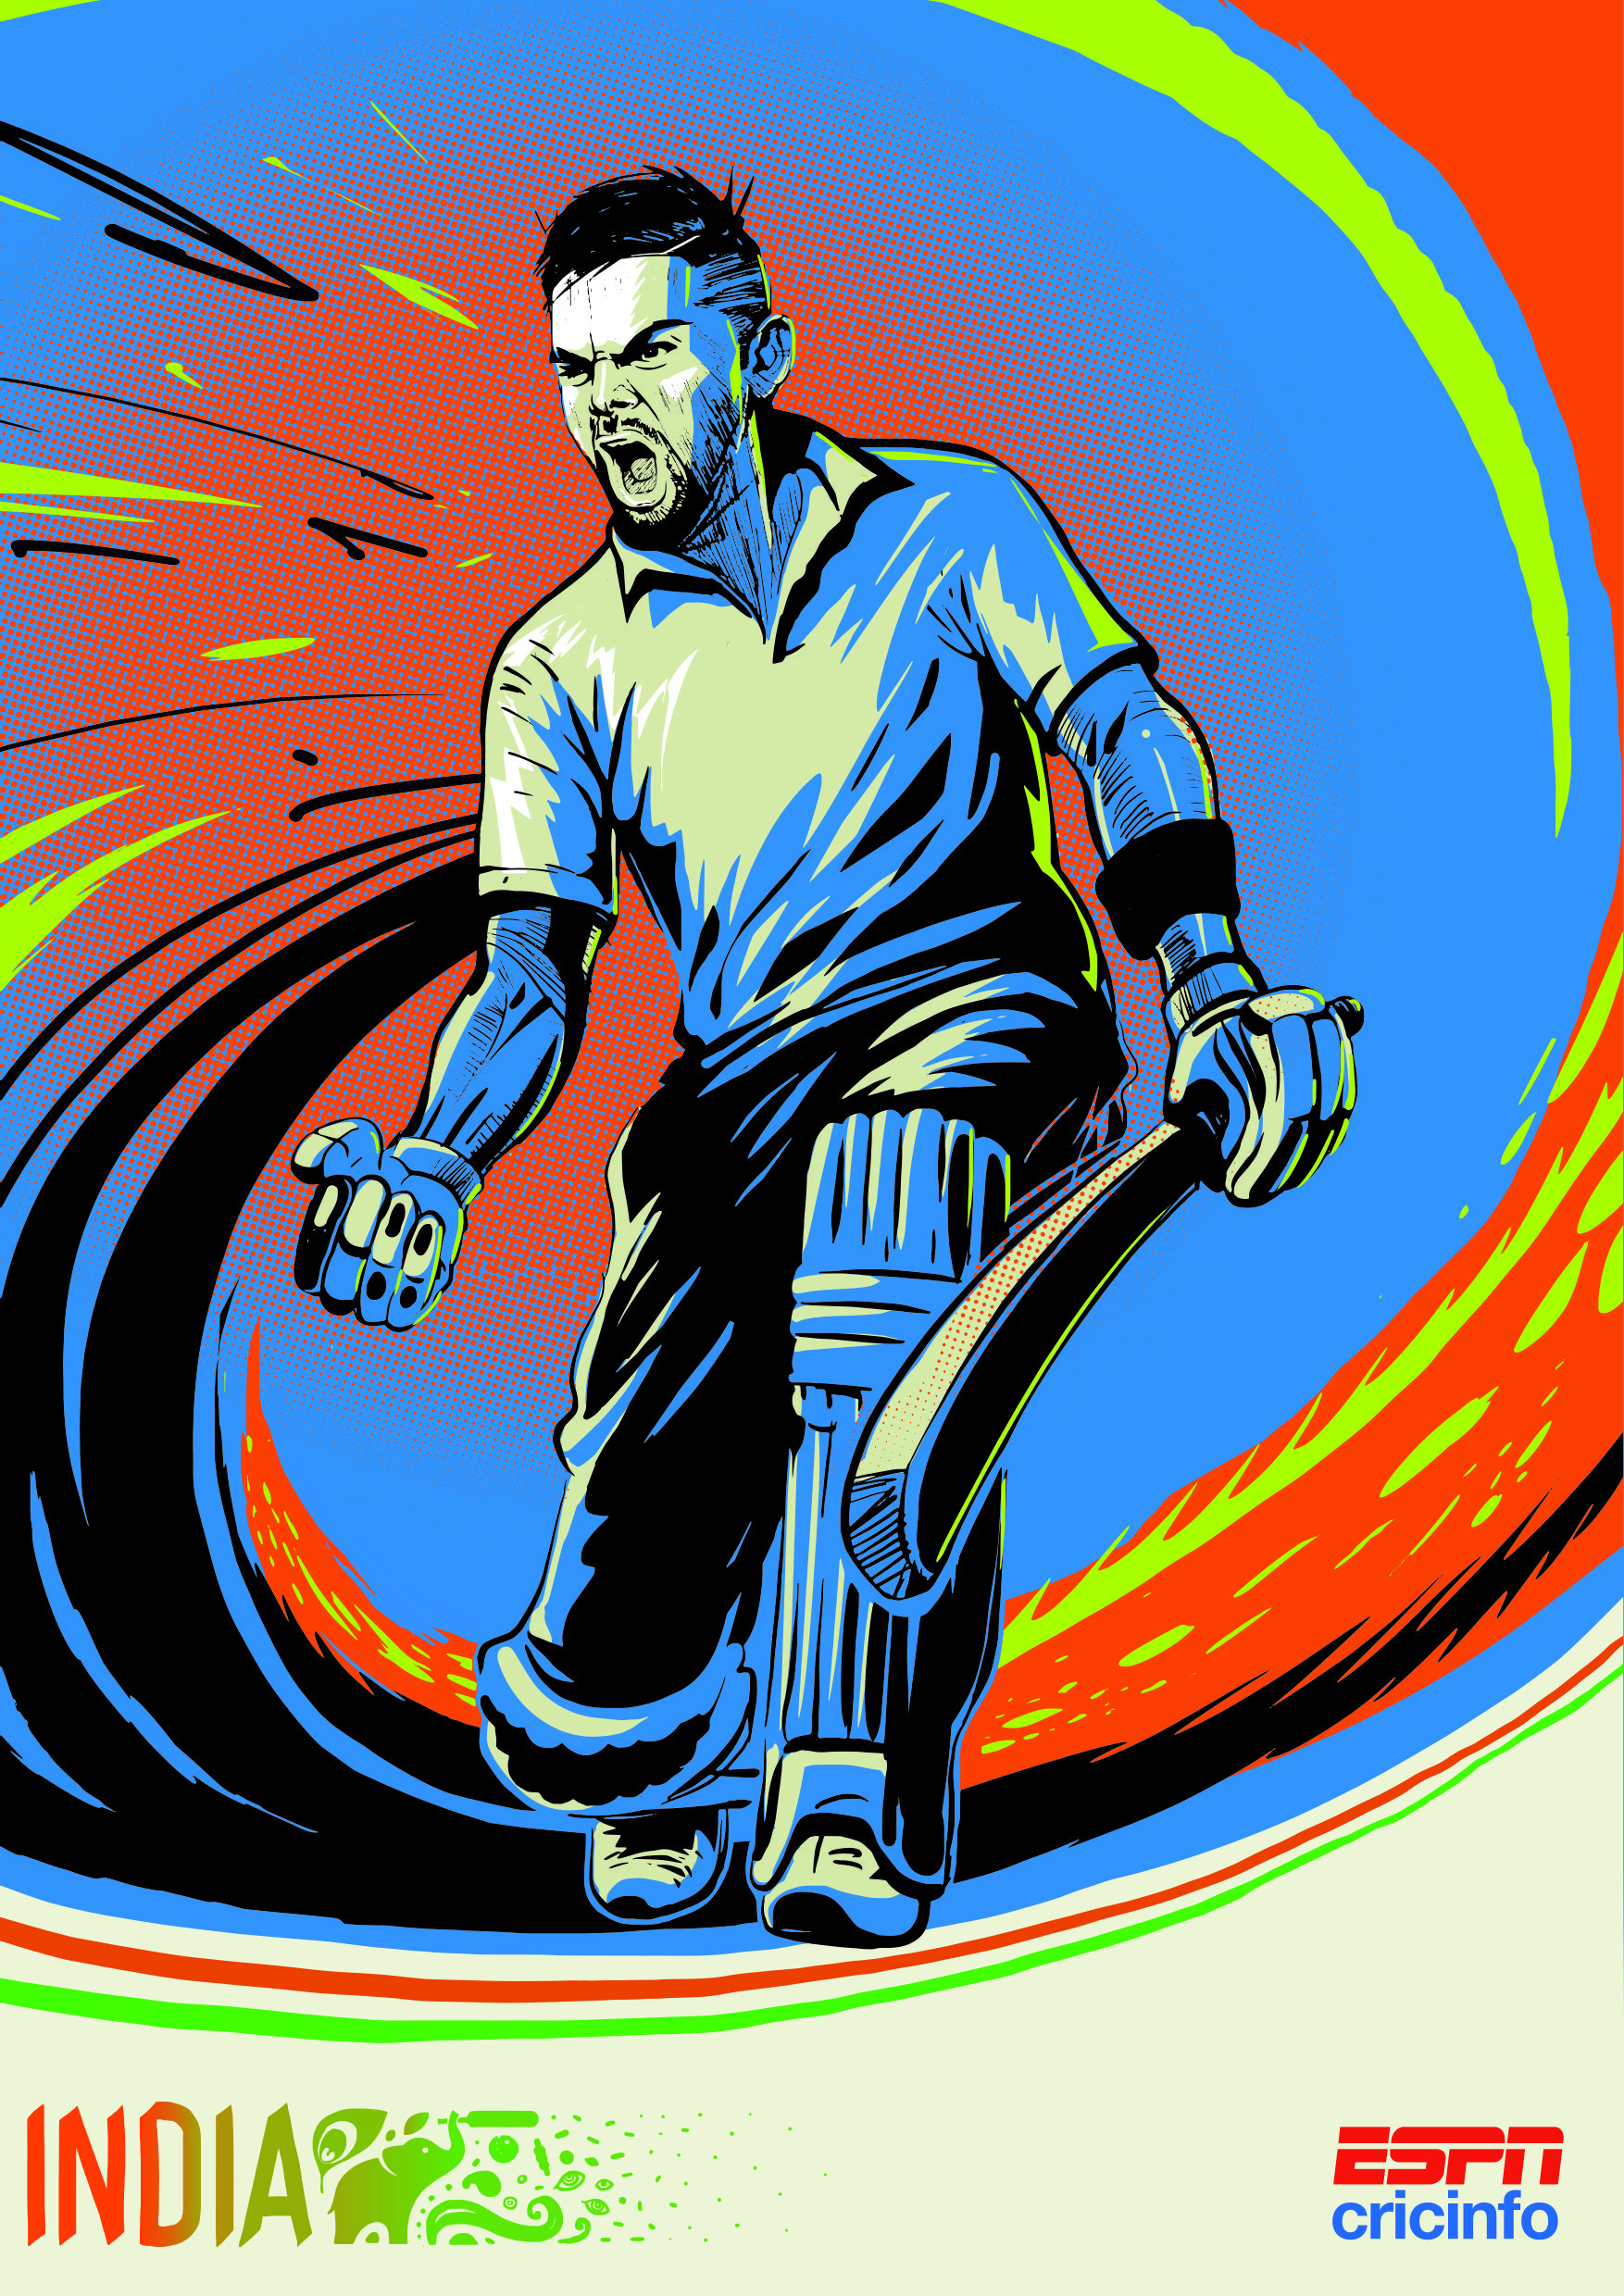 World Cup Posters Cricket Poster Cricket World Cup Cricket Wallpapers